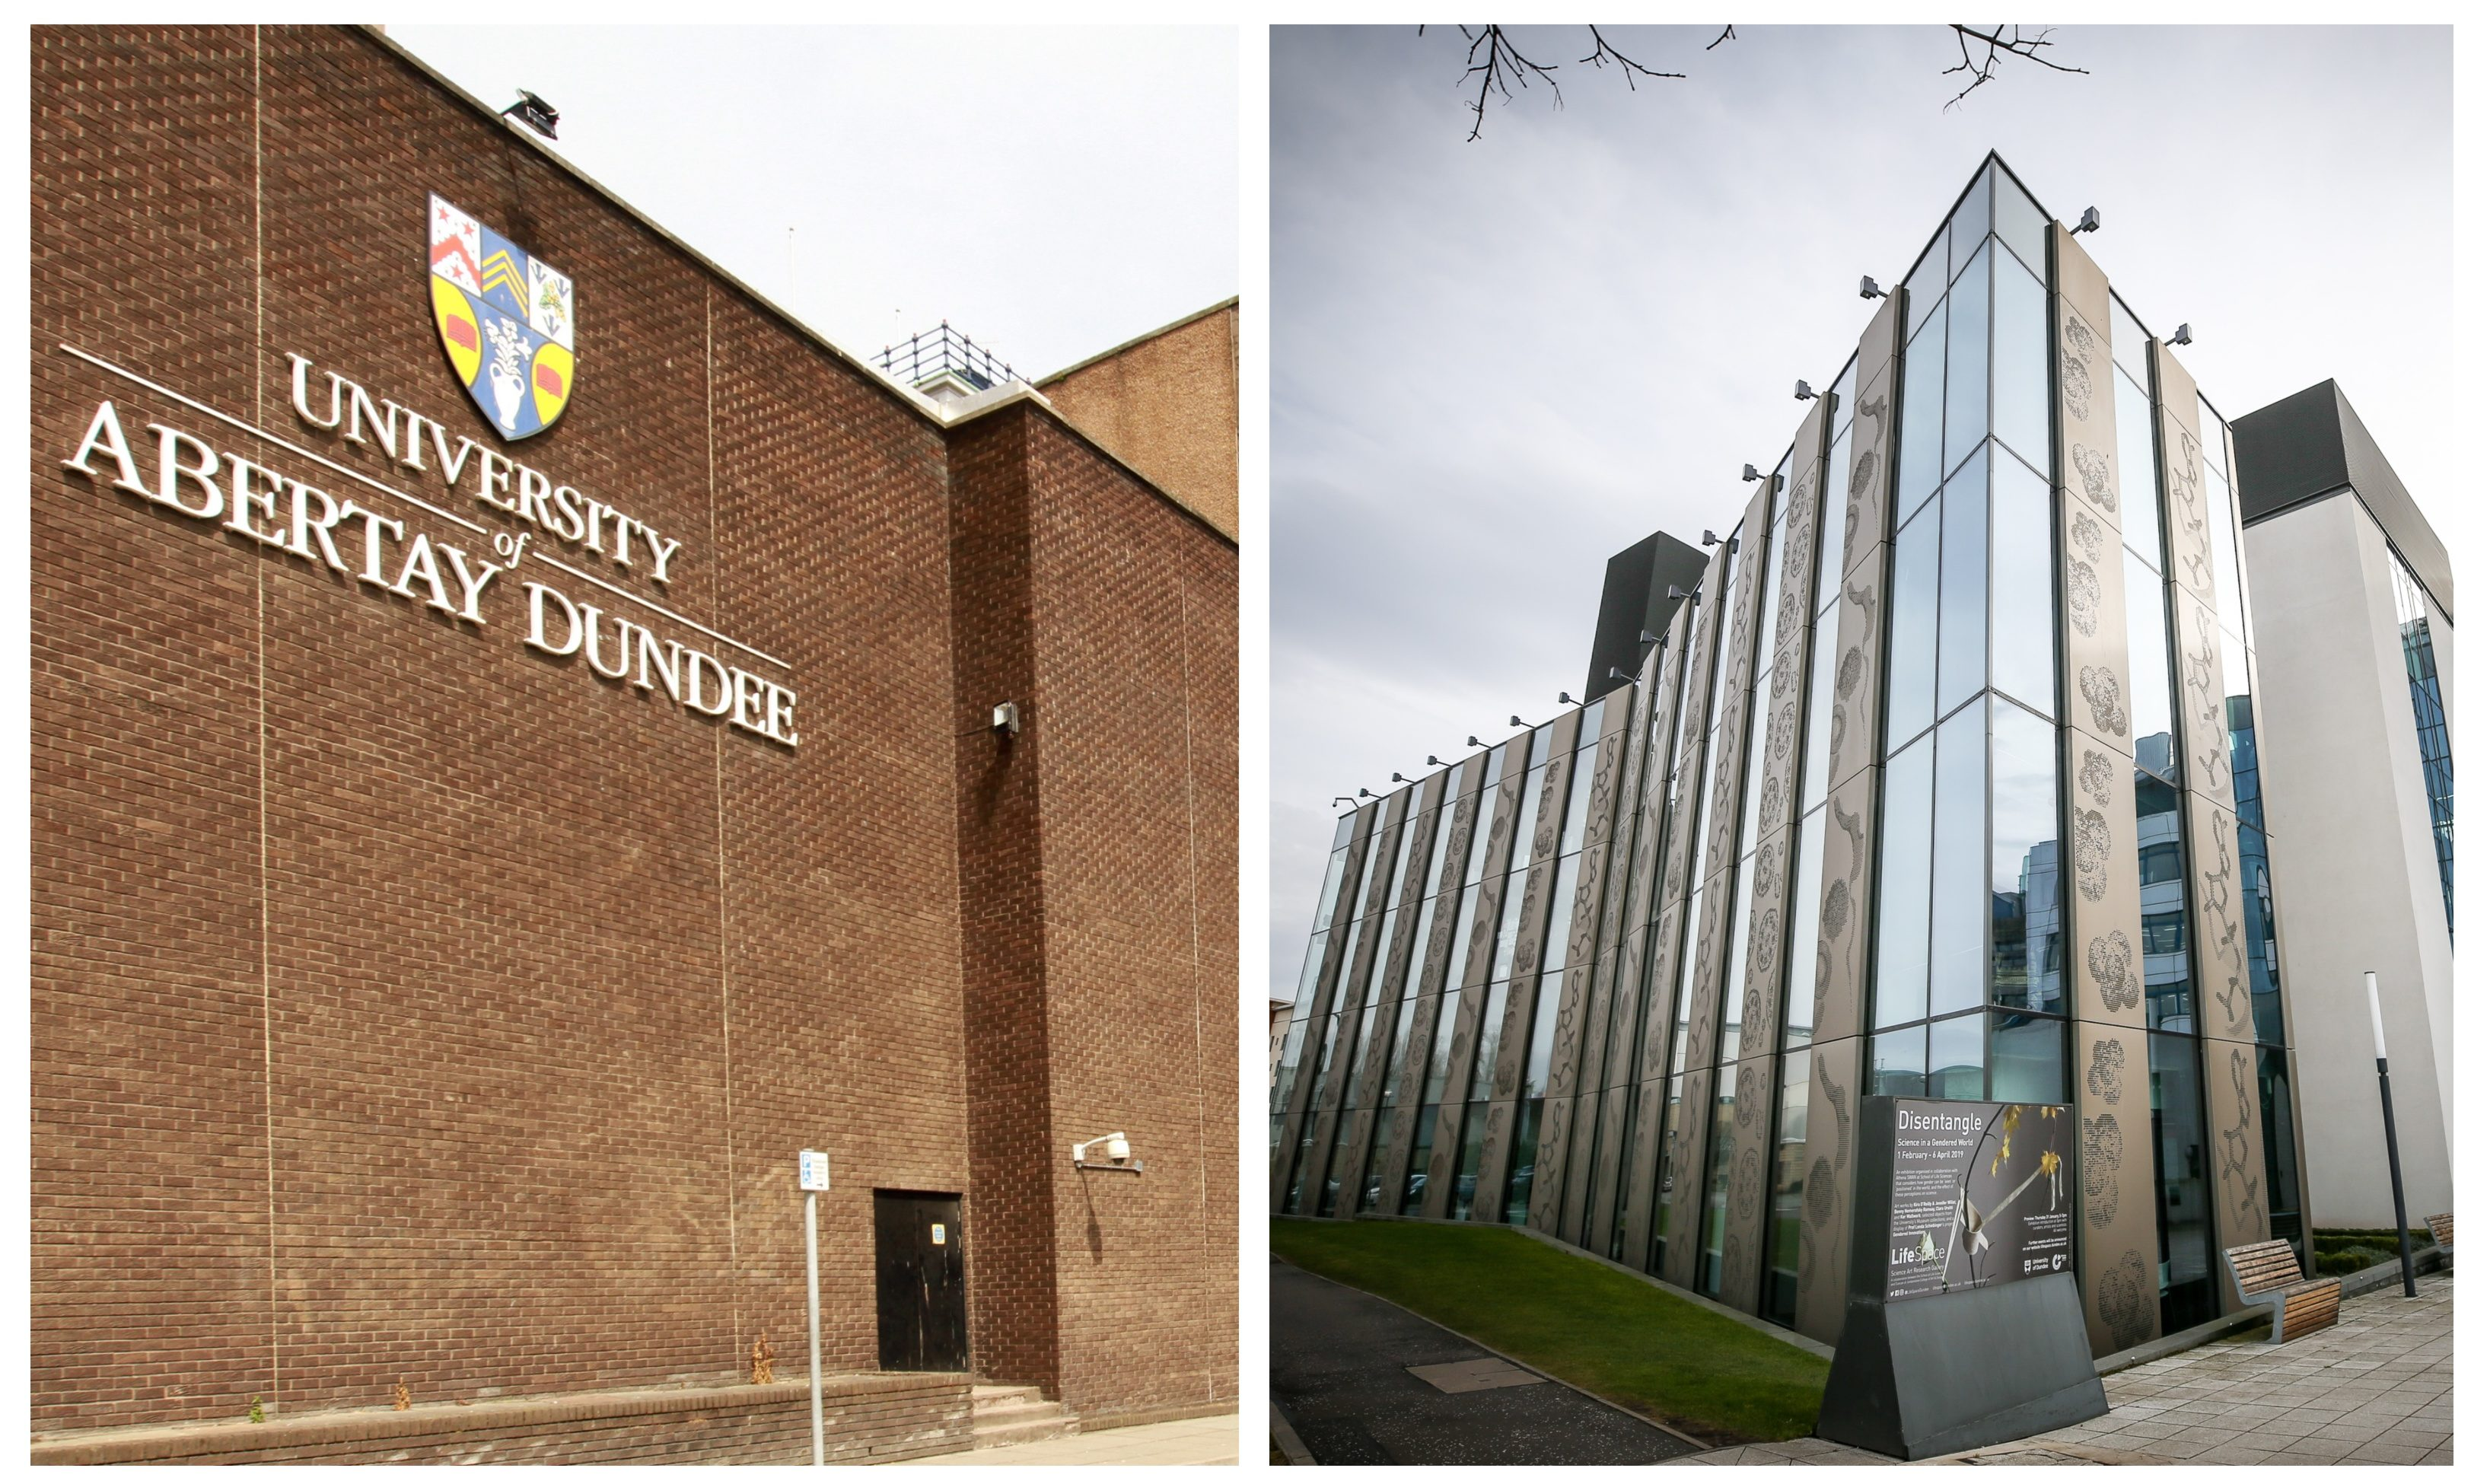 Abertay and Dundee universities.